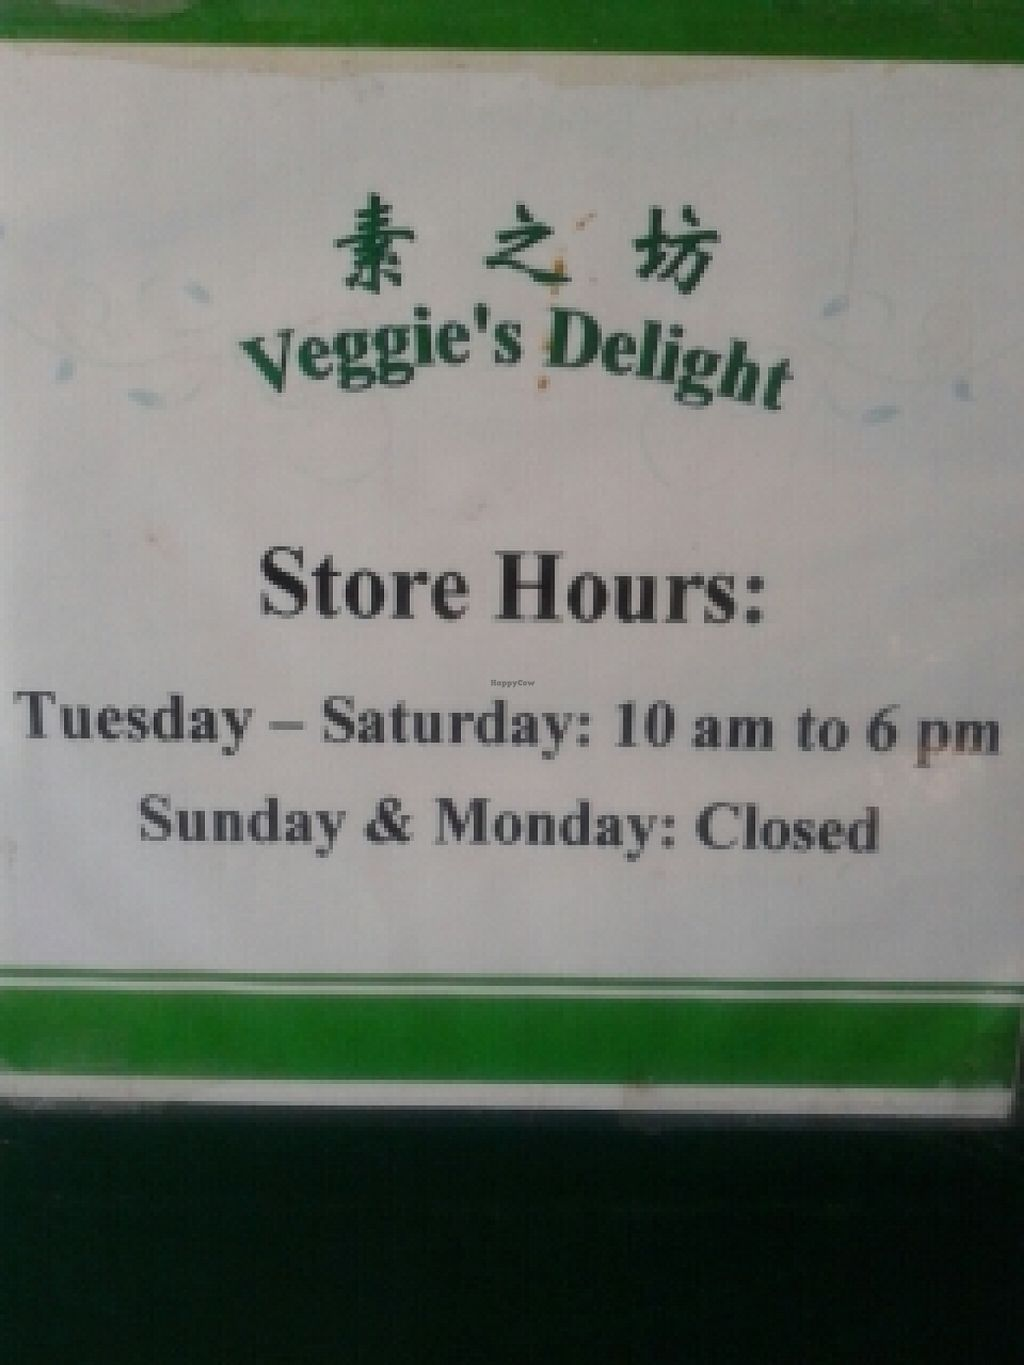 """Photo of Veggie's Delight  by <a href=""""/members/profile/chobesoy"""">chobesoy</a> <br/>hours, sometimes open Sunday mornings as well <br/> November 14, 2015  - <a href='/contact/abuse/image/1606/124970'>Report</a>"""